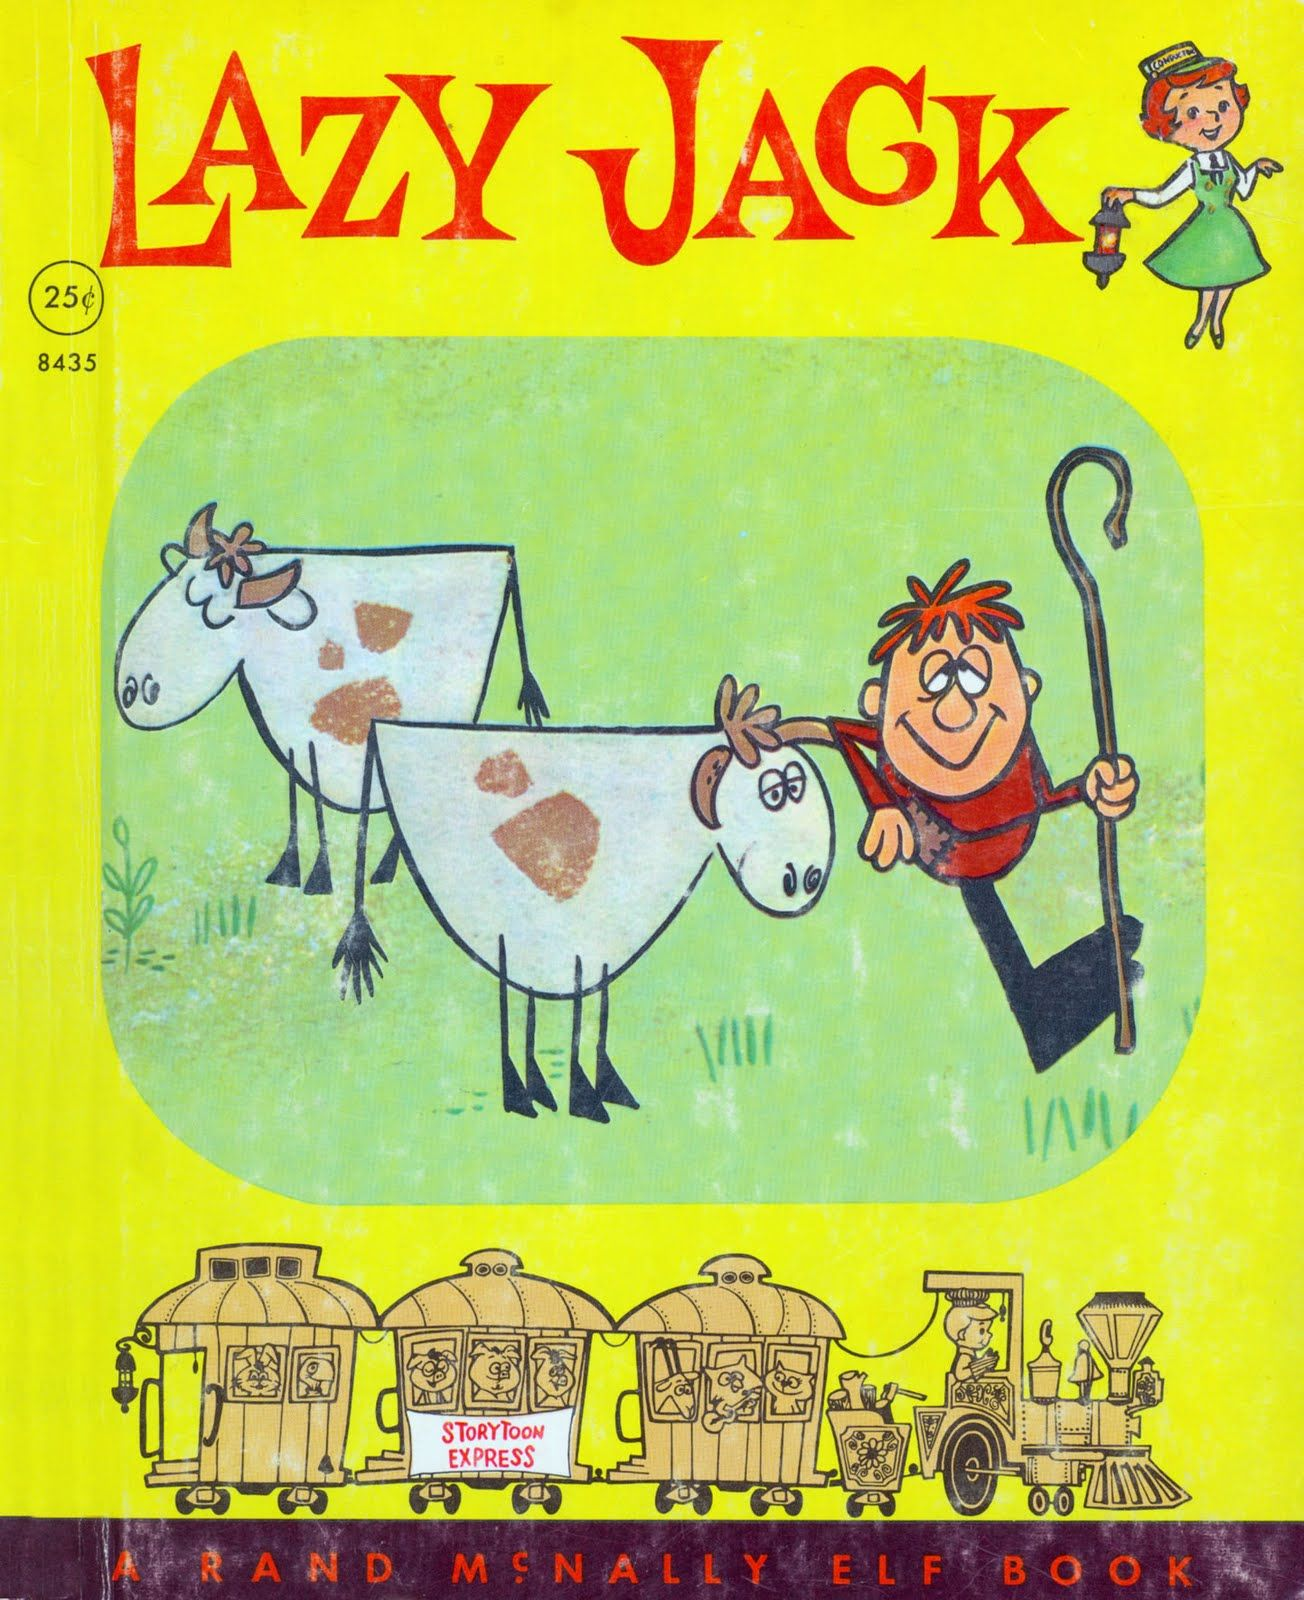 """Lazy Jack"" Illustrated by Frank Hursh Written by Margie"